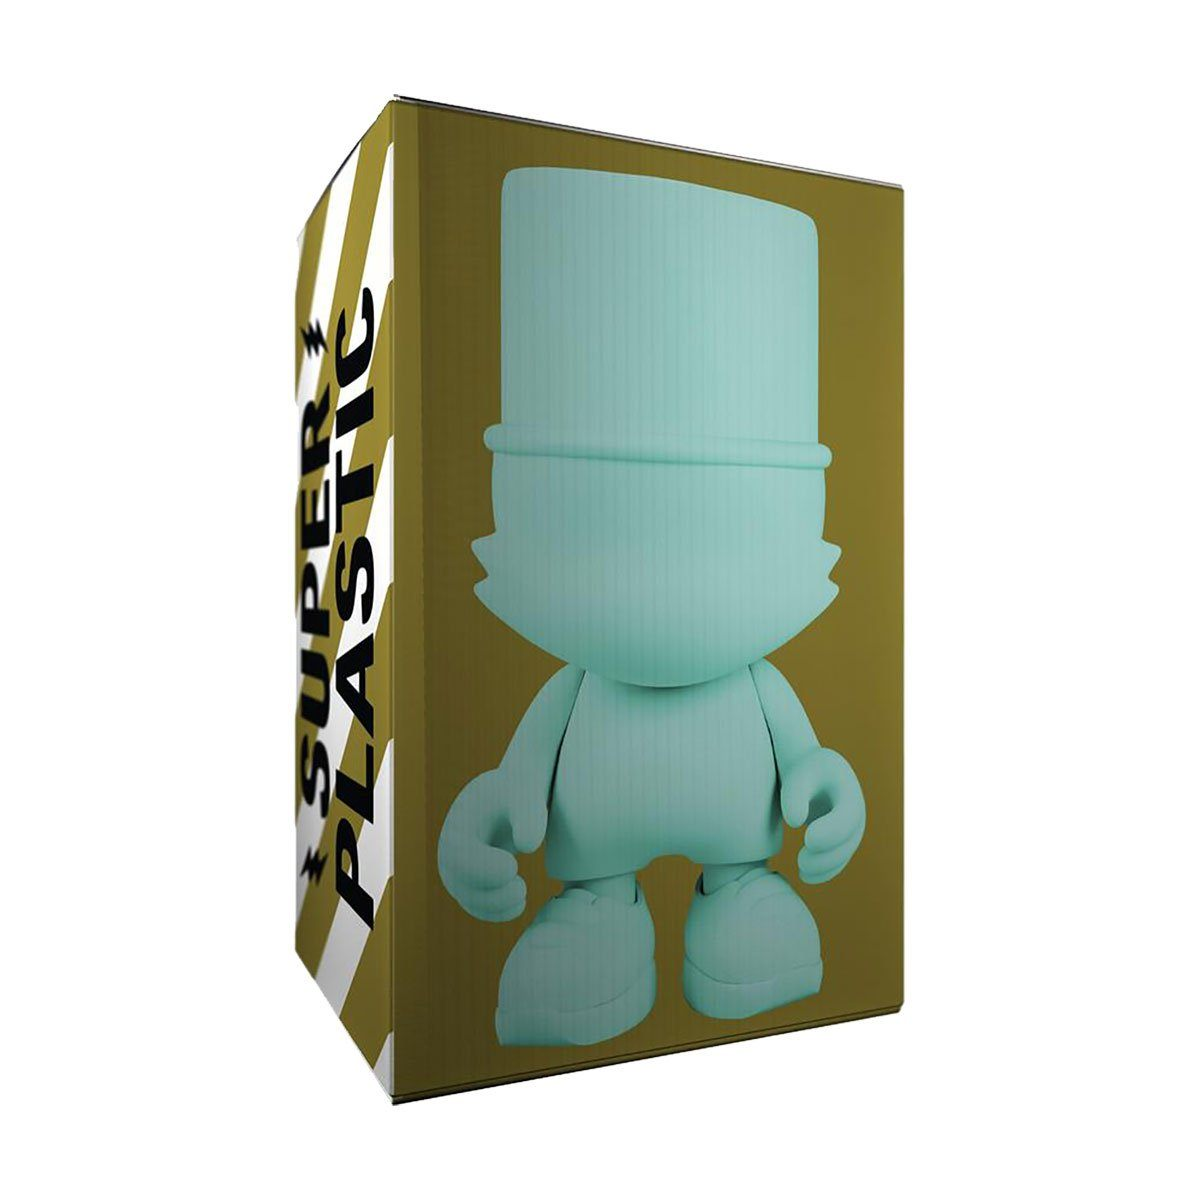 "Seafoam UberKranky 15"" Vinyl Figure by Sket One & Superplastic 15-inch Vinyl Figure Superplastic"